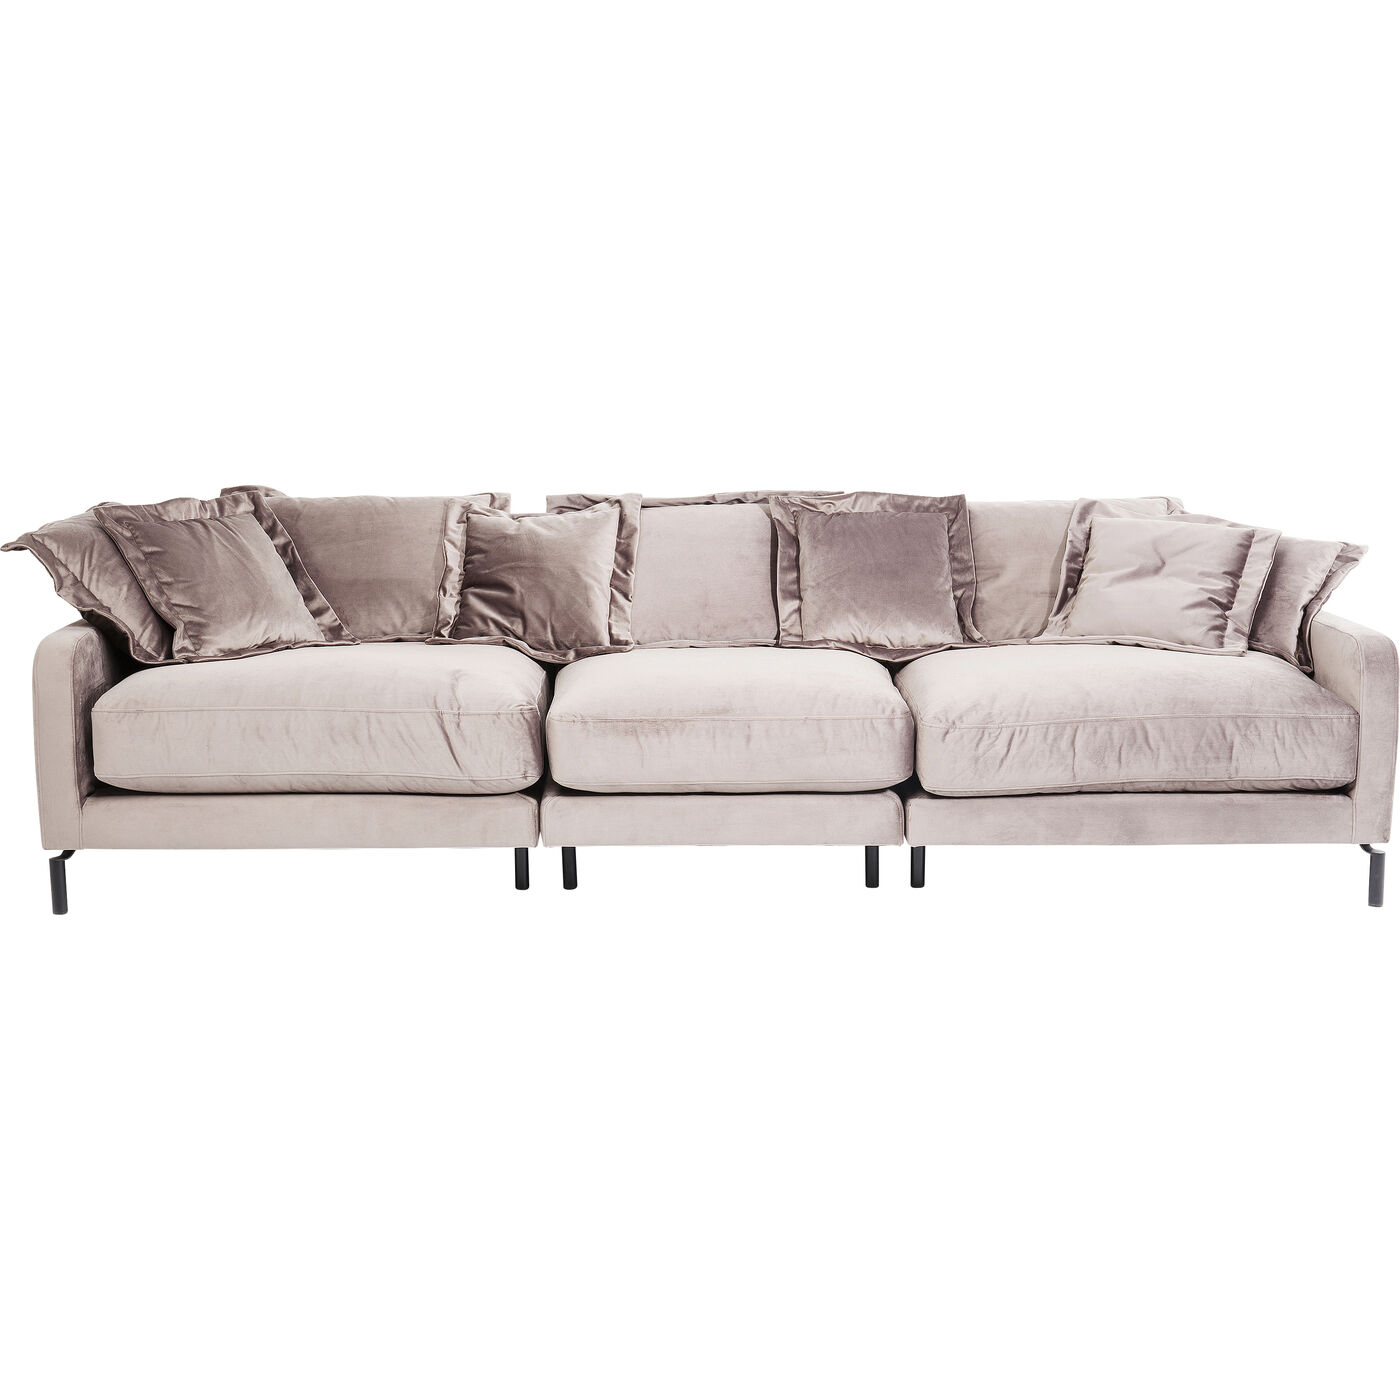 Sofa Lullaby 3-Sitzer Taupe